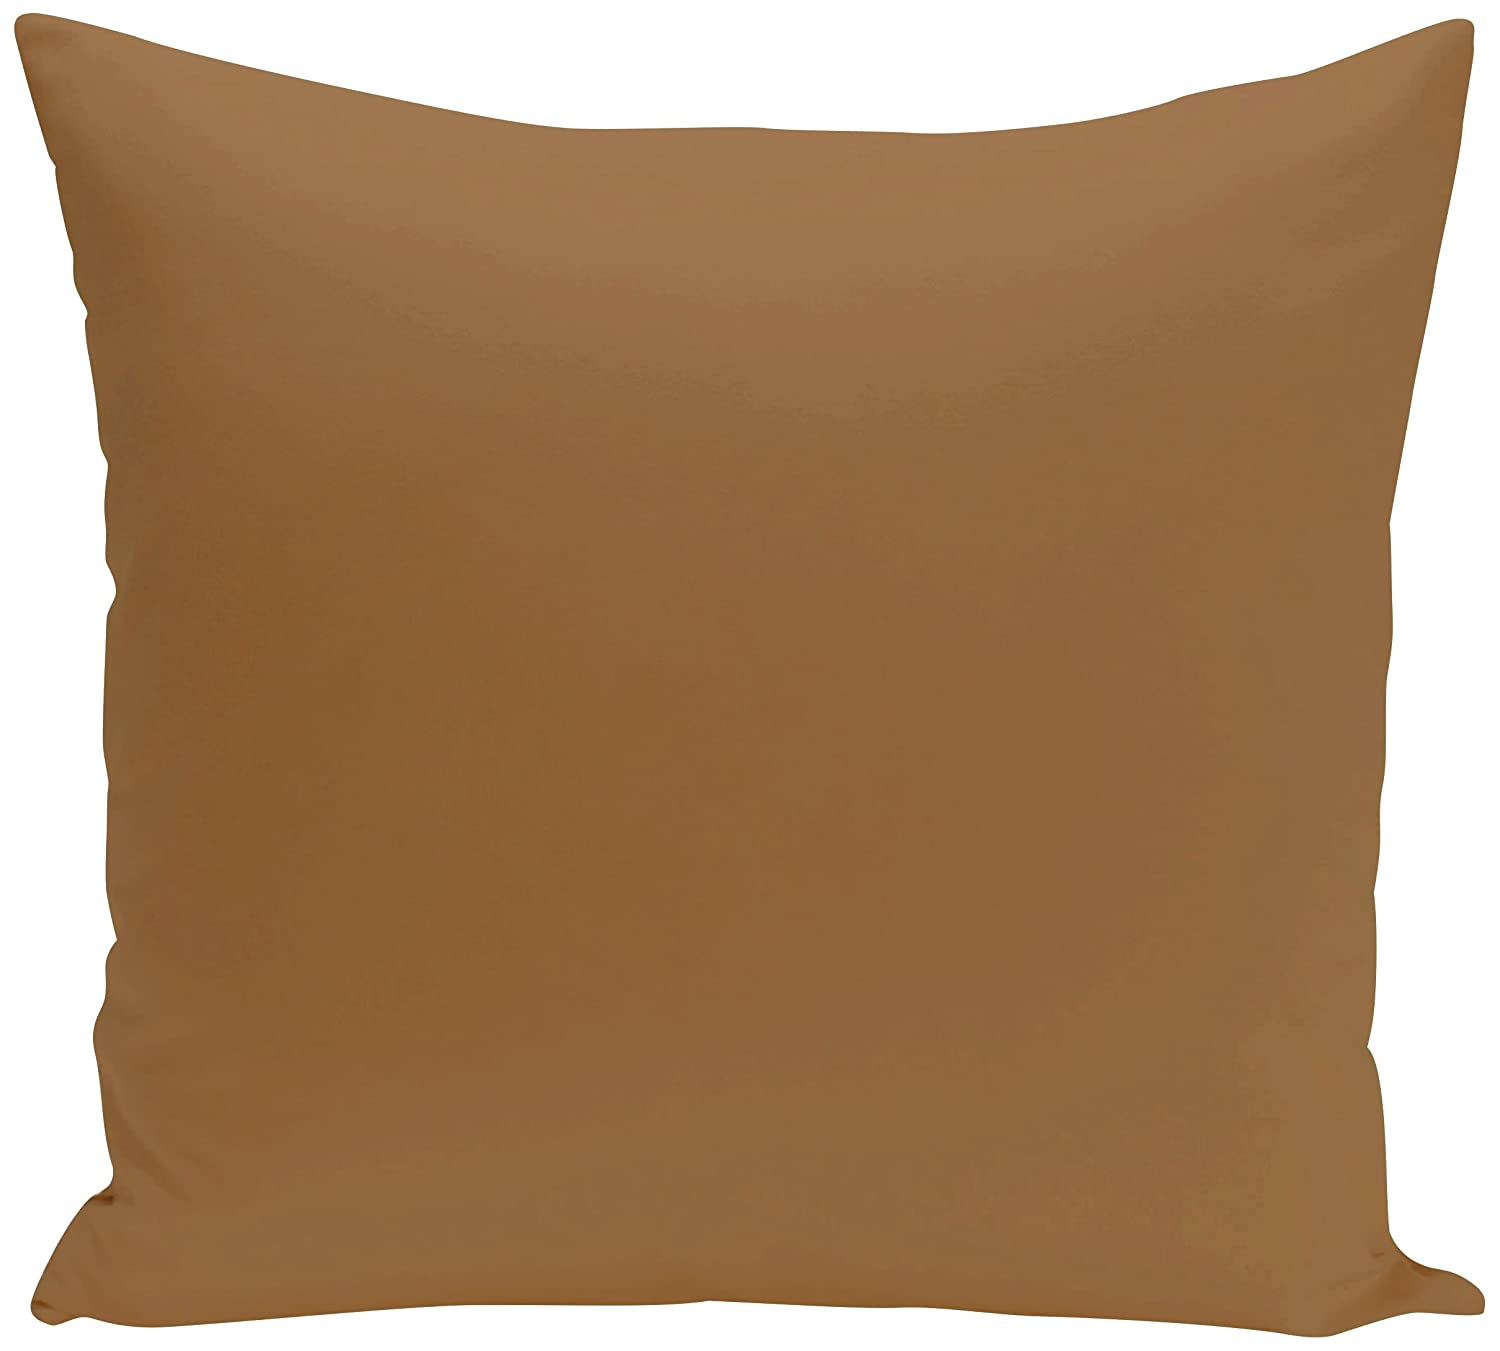 Tan 20x20 Brown E by design PSOBR3-20 20 x 20-inch Solid Print Pillow